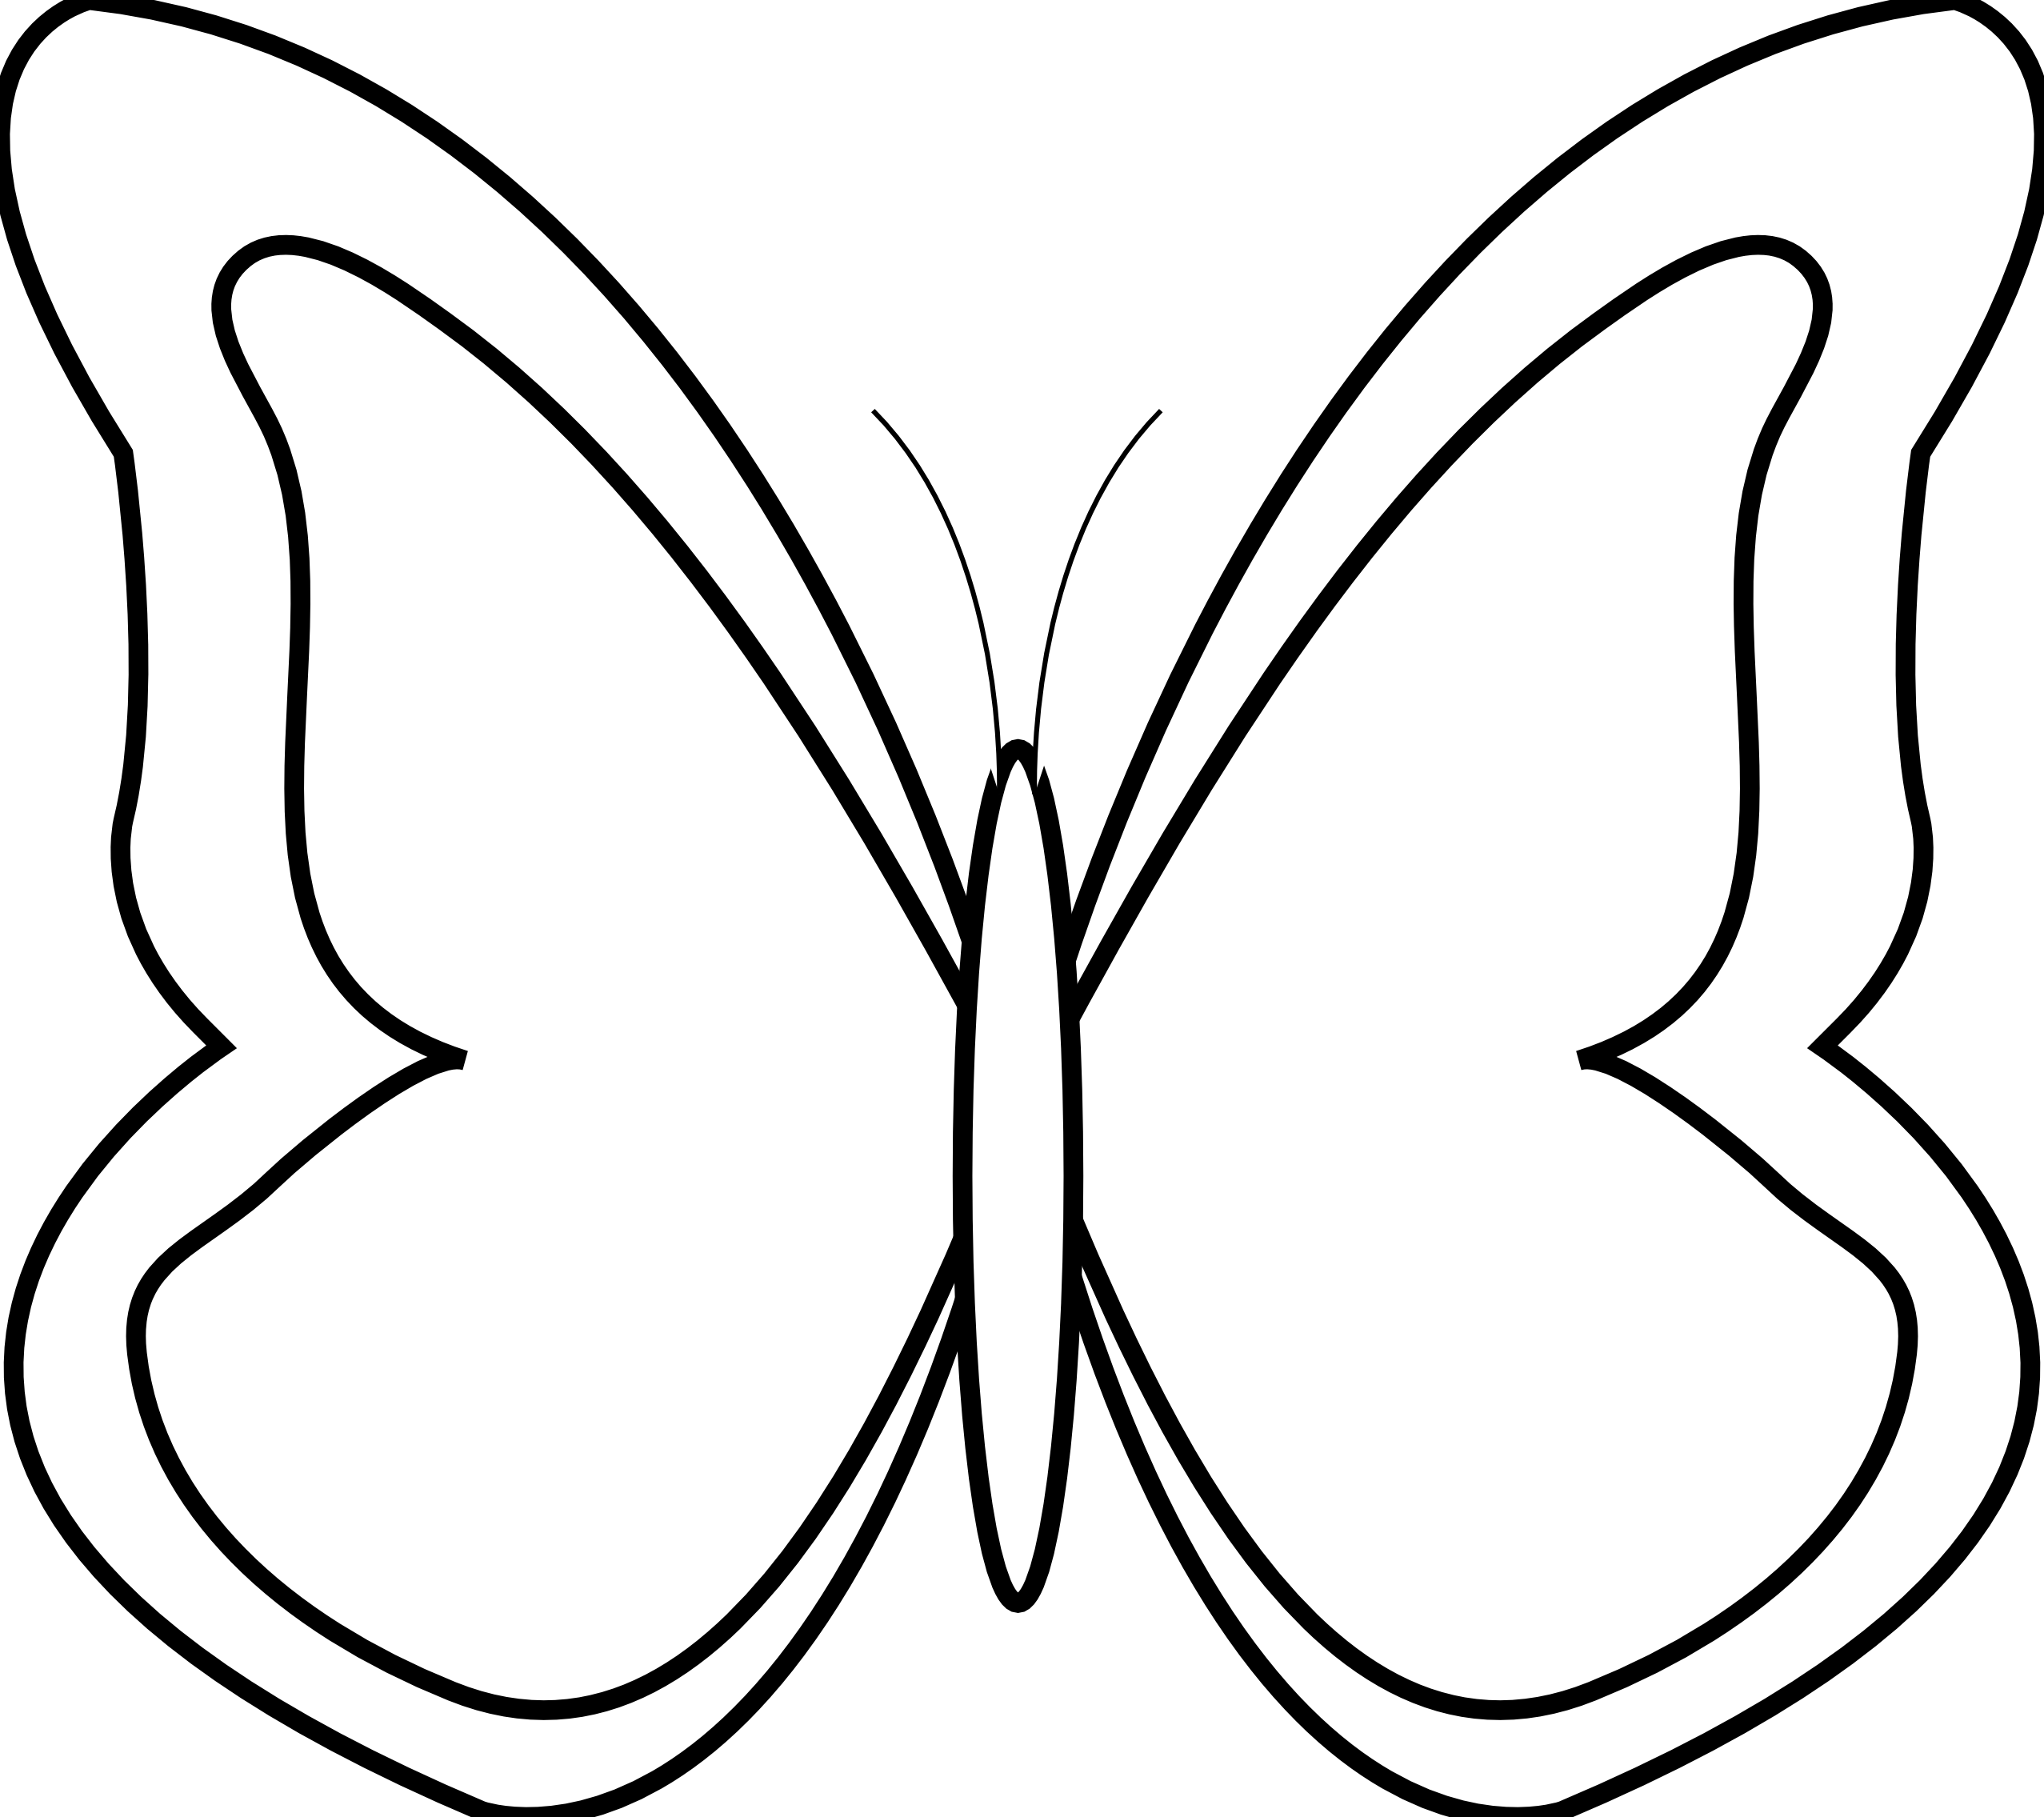 Butterfly flying outline panda. Yogurt clipart color